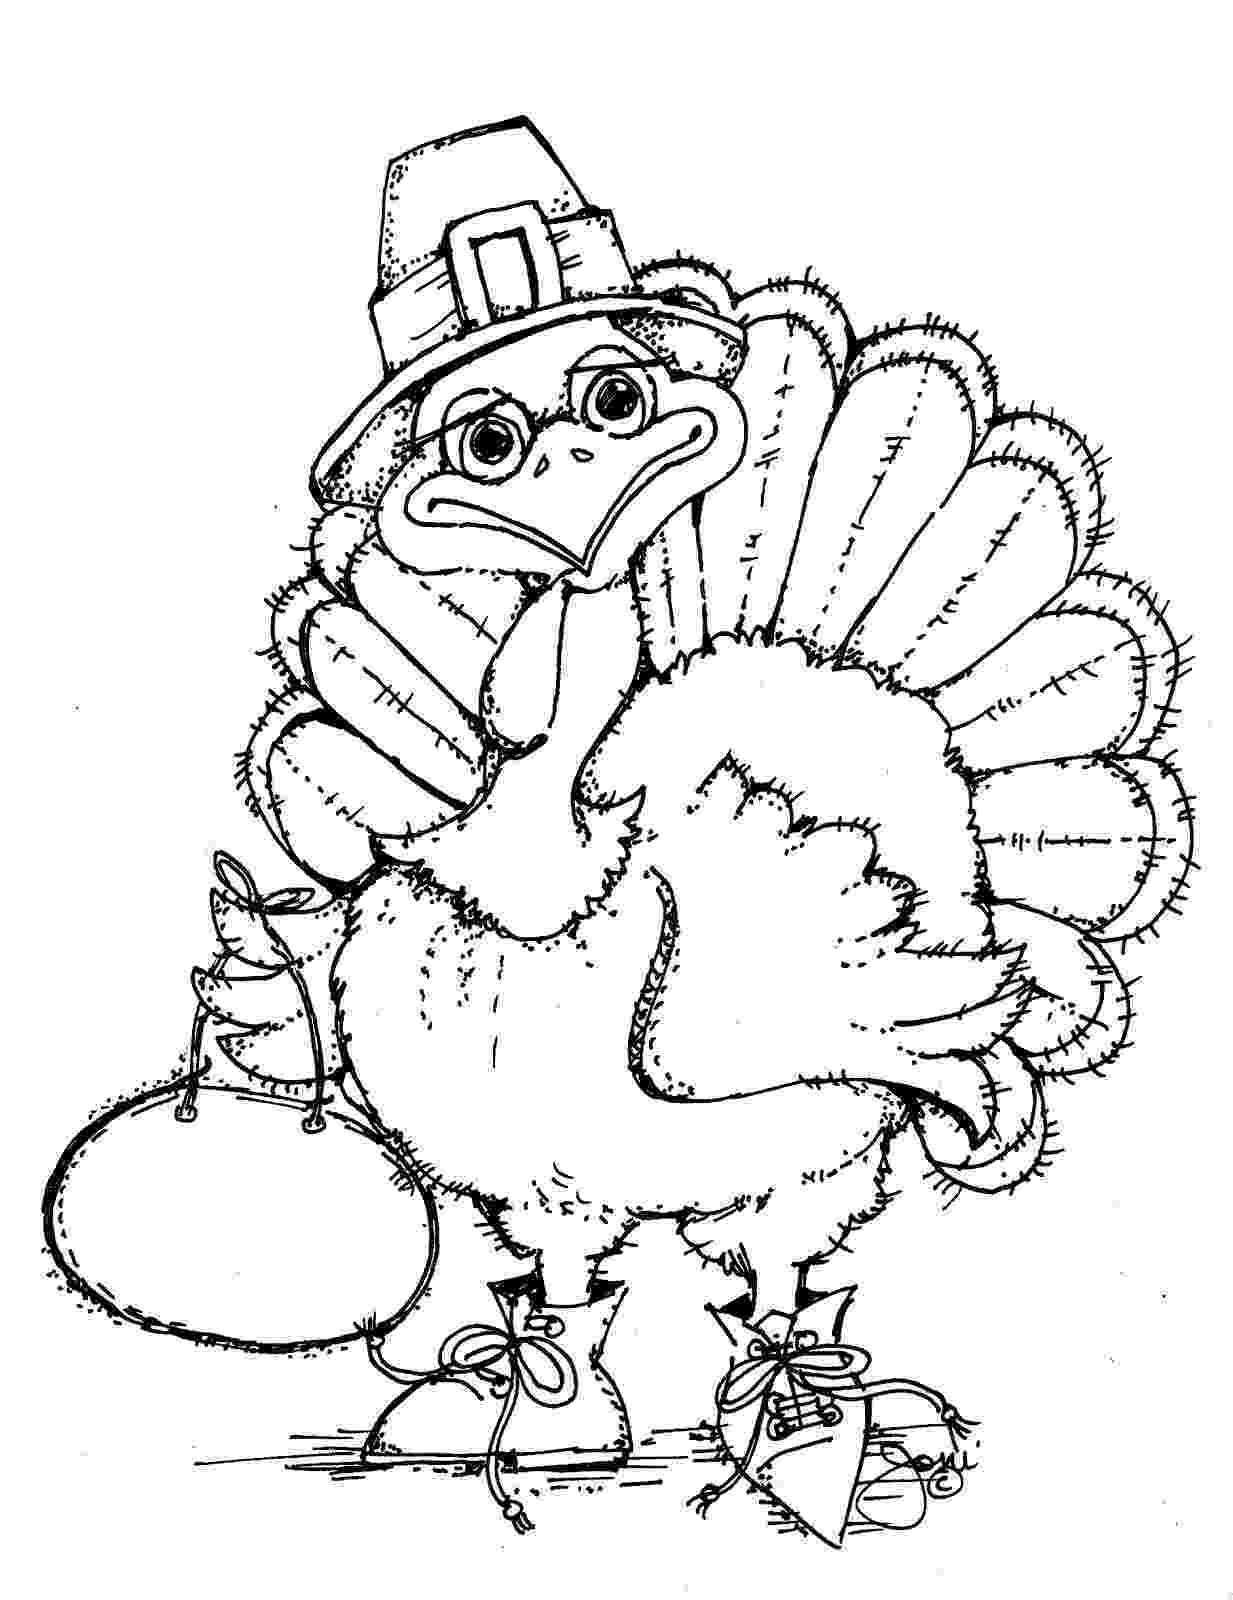 turkey coloring free printable turkey coloring pages for kids coloring turkey